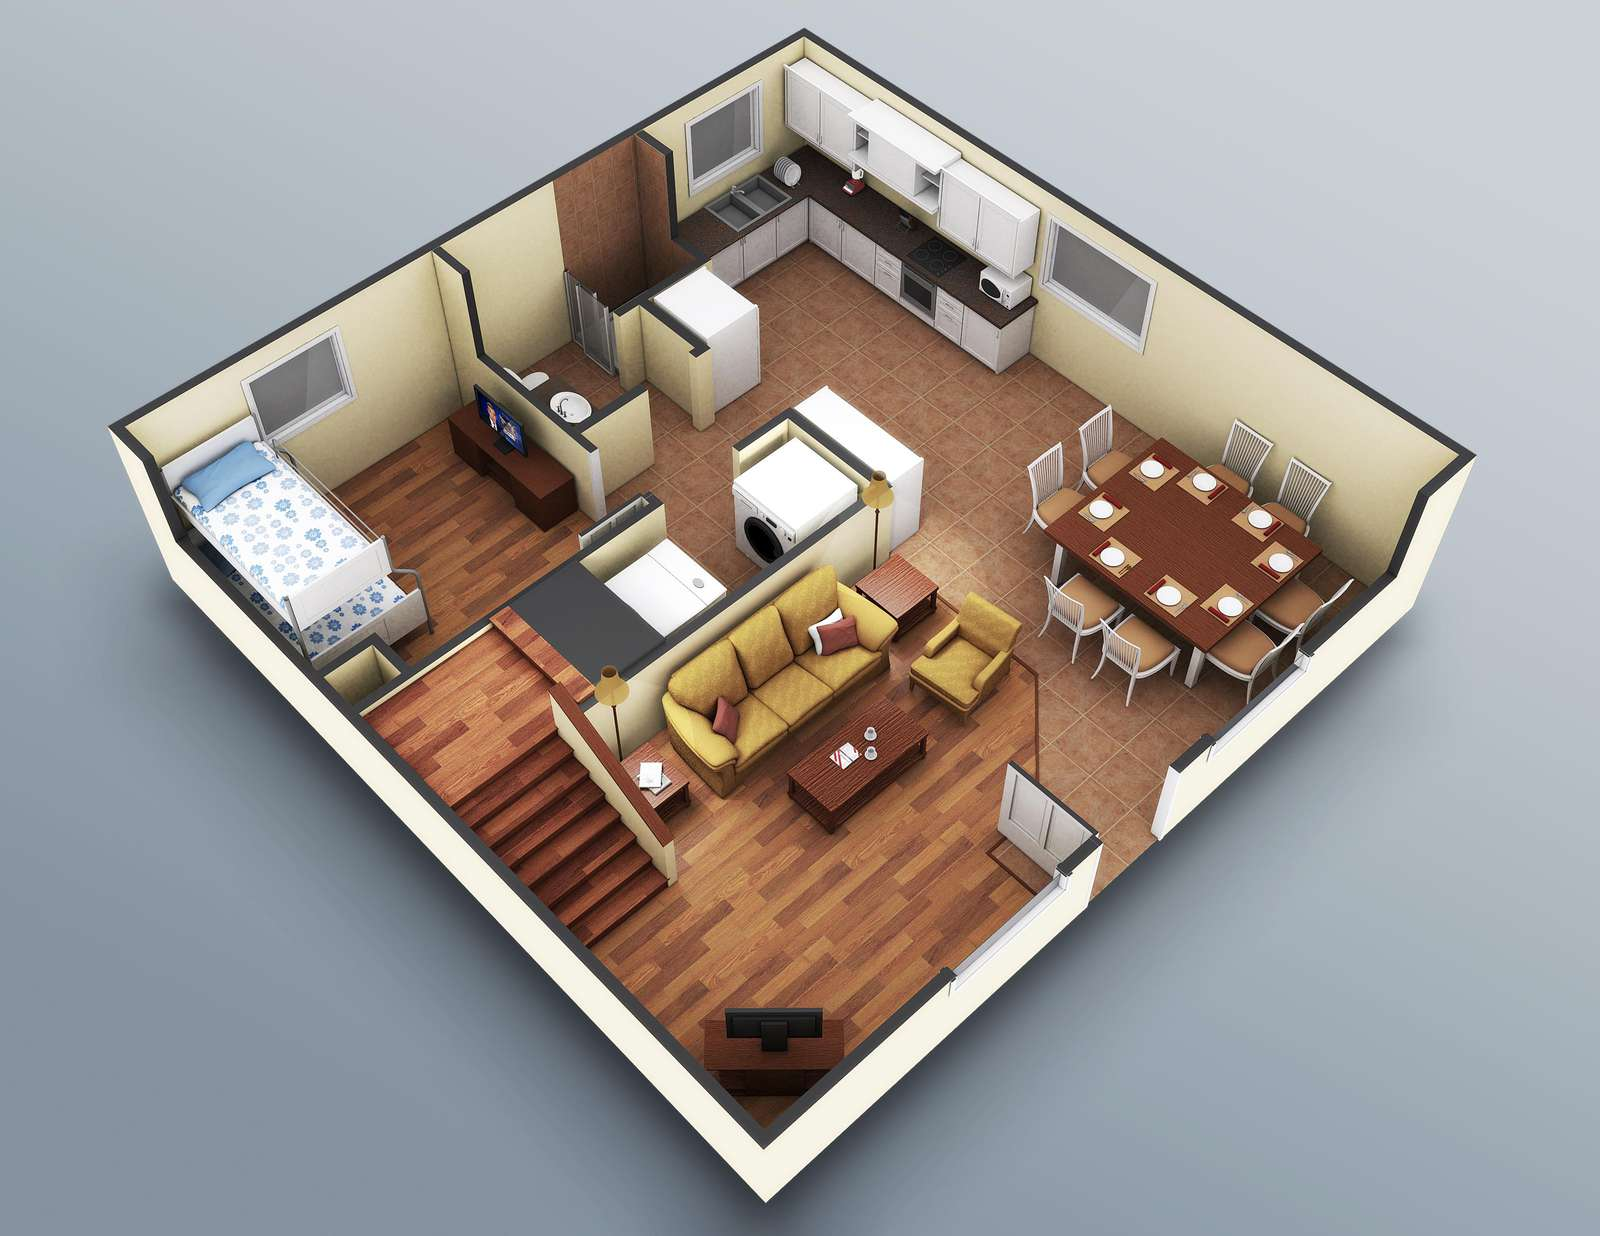 The lower level rendering. Accurate down to the furniture placement.